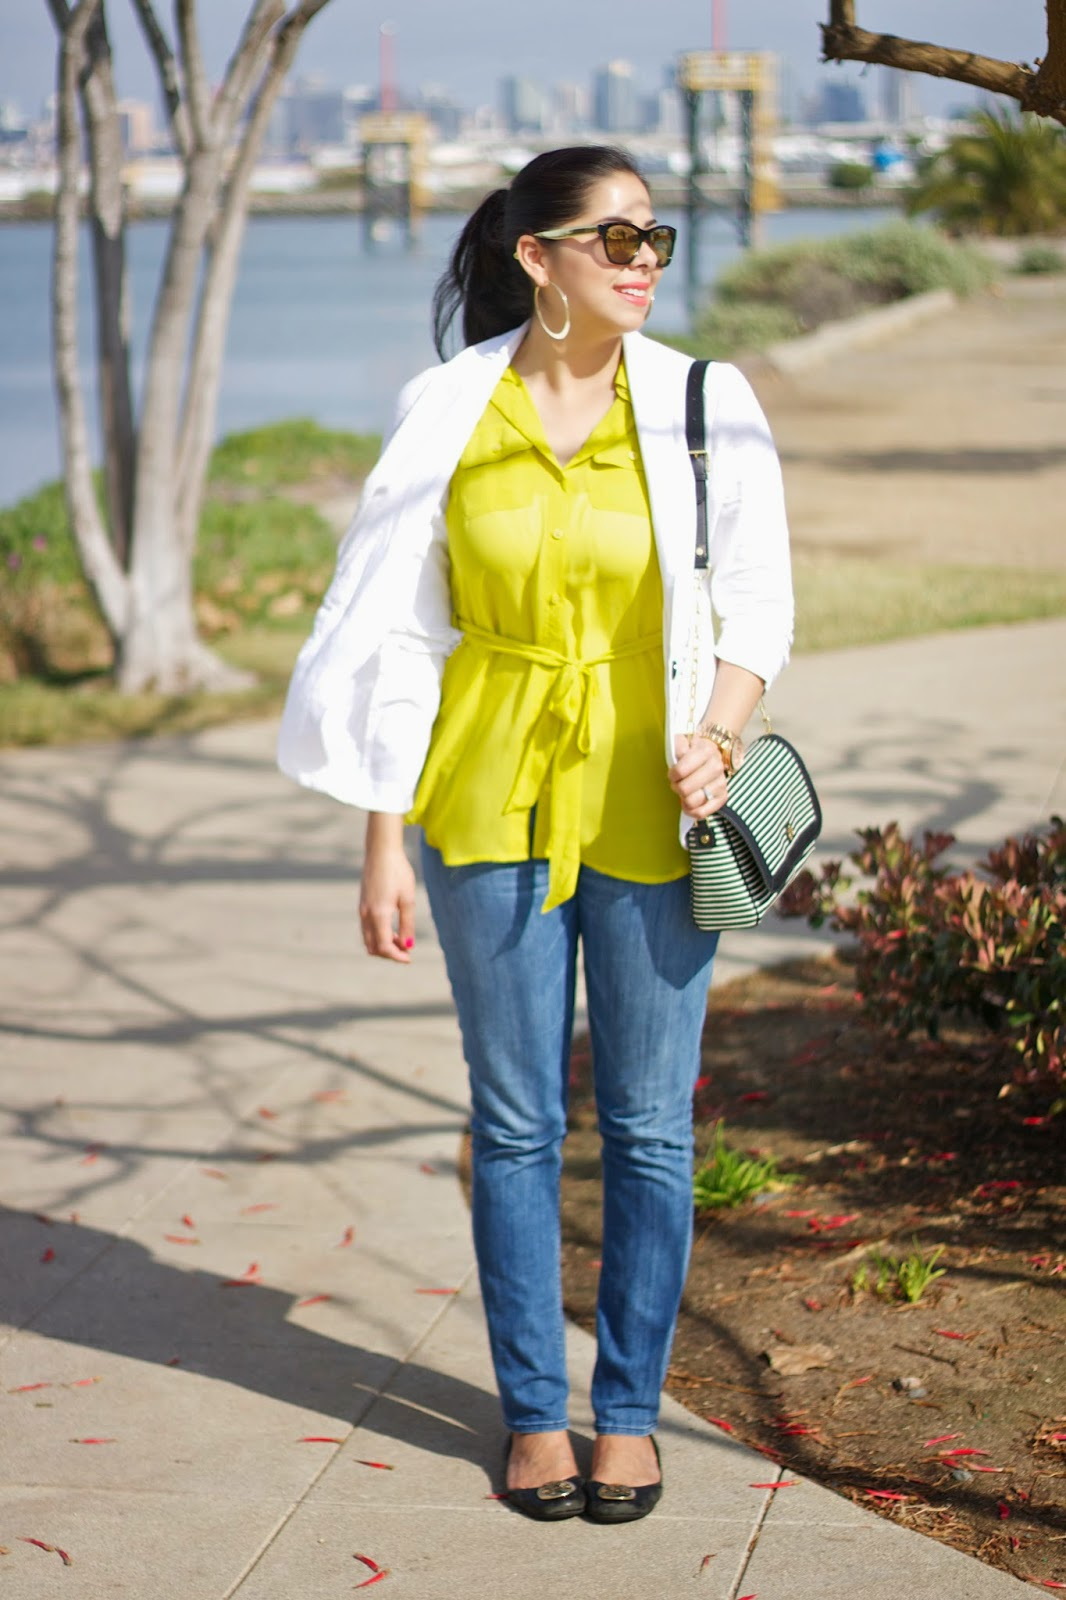 White Linen Blazer, Charlotte Russe Blazer, Neon Yellow Sheer Top, Forever 21 Neon Yellow Top, Hudson Jeans, Tory Burch reva flats